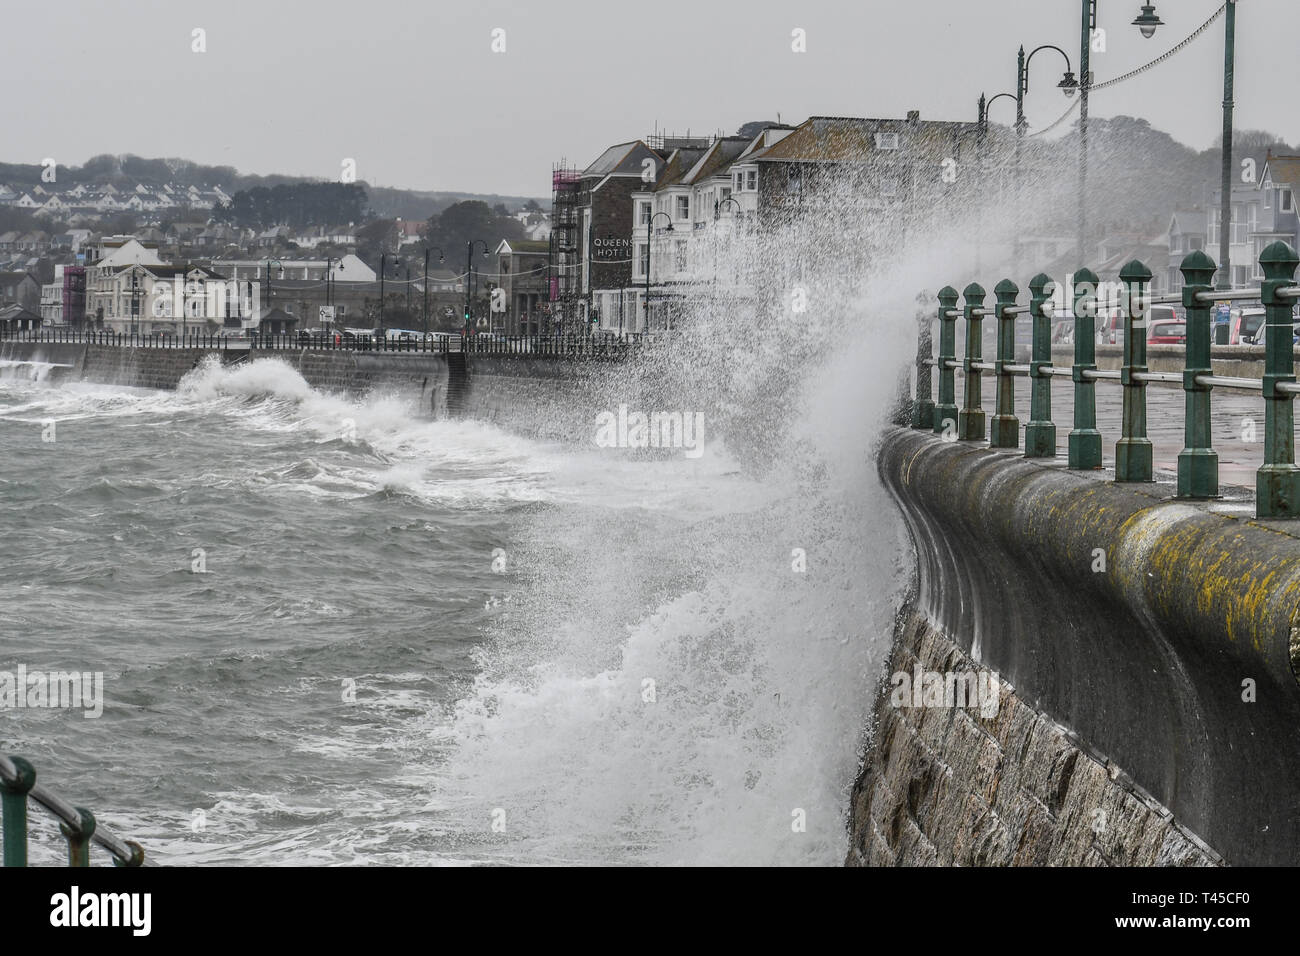 Penzance, Cornwall, UK. 14th April 2019. UK Weather.  The second week of the school holidays started with rain, strong easterly wind and big waves smashing into the seafront at Penzance today. Credit: Simon Maycock/Alamy Live News Stock Photo